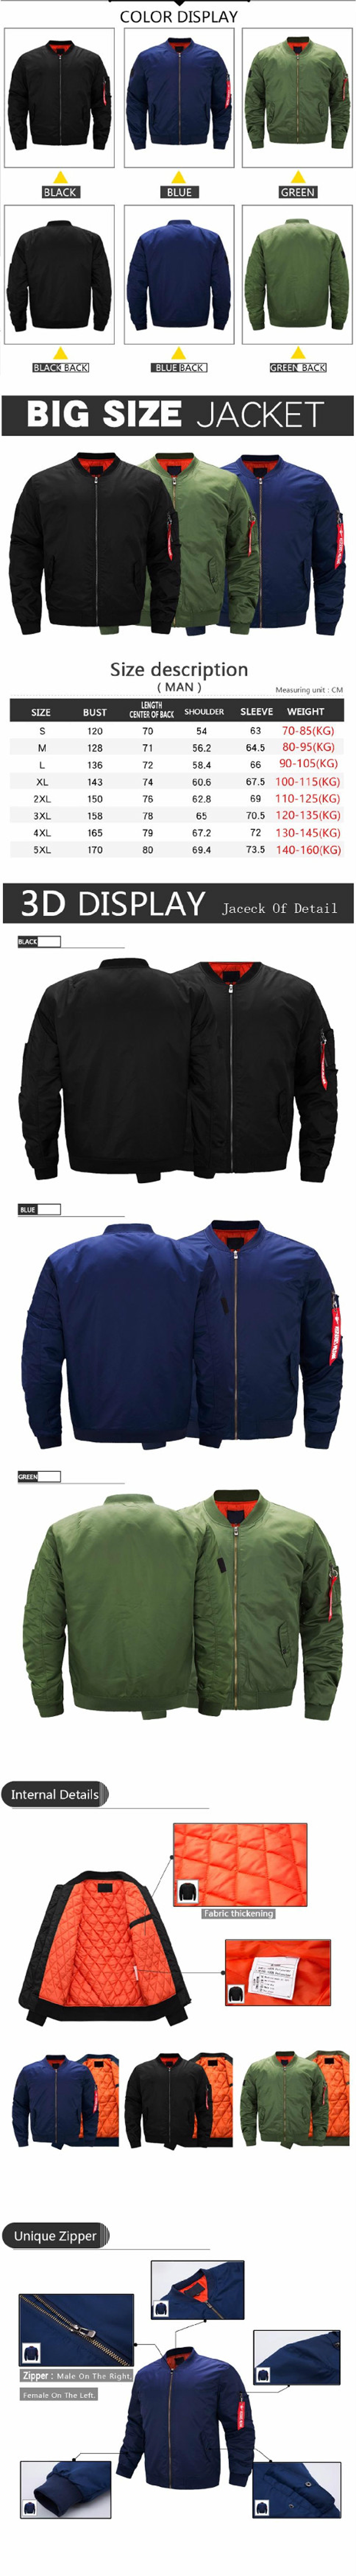 Dropshipping USA Size And That's How I Saved The World Jesus Jacket Men casacas para hombre mens bomber jackets and coats